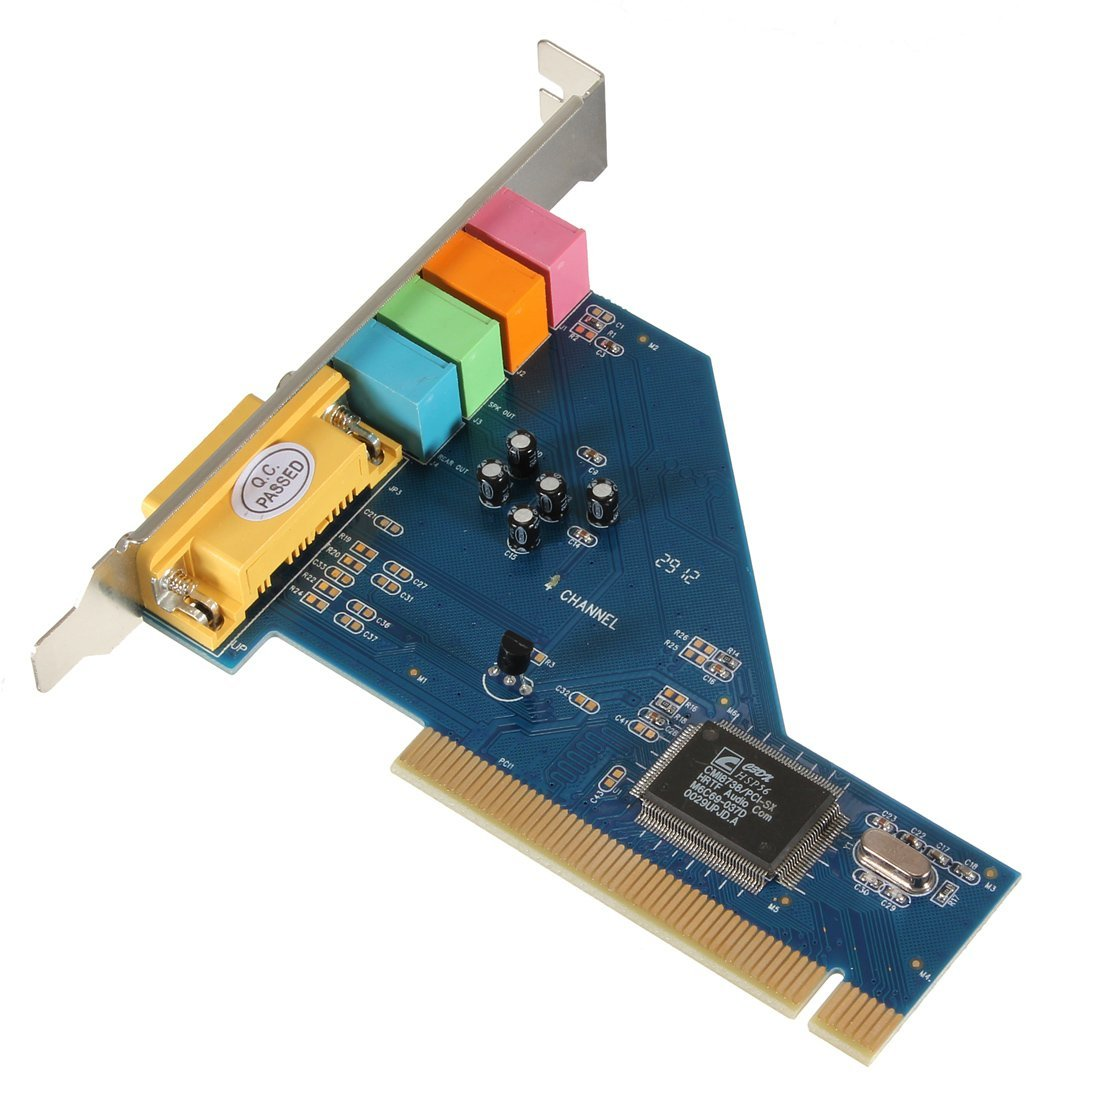 YOC Hot 4 Channel 8738 Chip 3D Audio Stereo PCI Sound Card Win7 64 Bit ess 4 1 channel pci sound card red